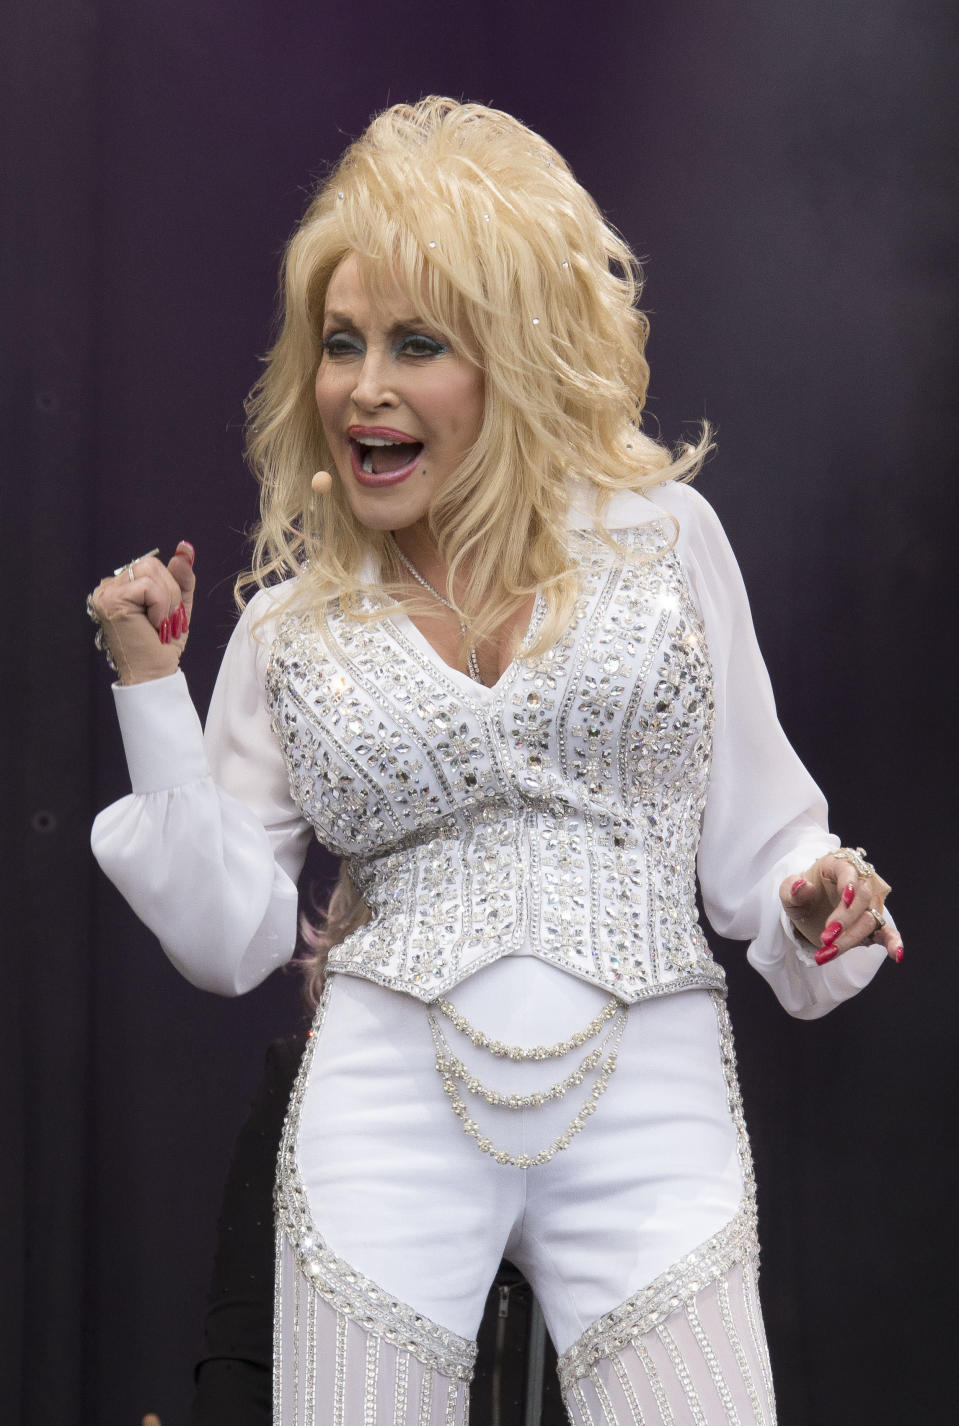 """FILE - Dolly Parton performs on the main Pyramid stage at Glastonbury music festival, England on June 29, 2014. The Grammy-winning legend's 1980's hit """"9 to 5"""" has been flipped by Squarespace, the company that helps users build and host their own websites, for a Super Bowl commercial debuting Tuesday, Feb. 2, 2021. Oscar winner Damien Chazelle of """"La La Land"""" fame directed the spot. (Photo by Joel Ryan/Invision/AP, File)"""